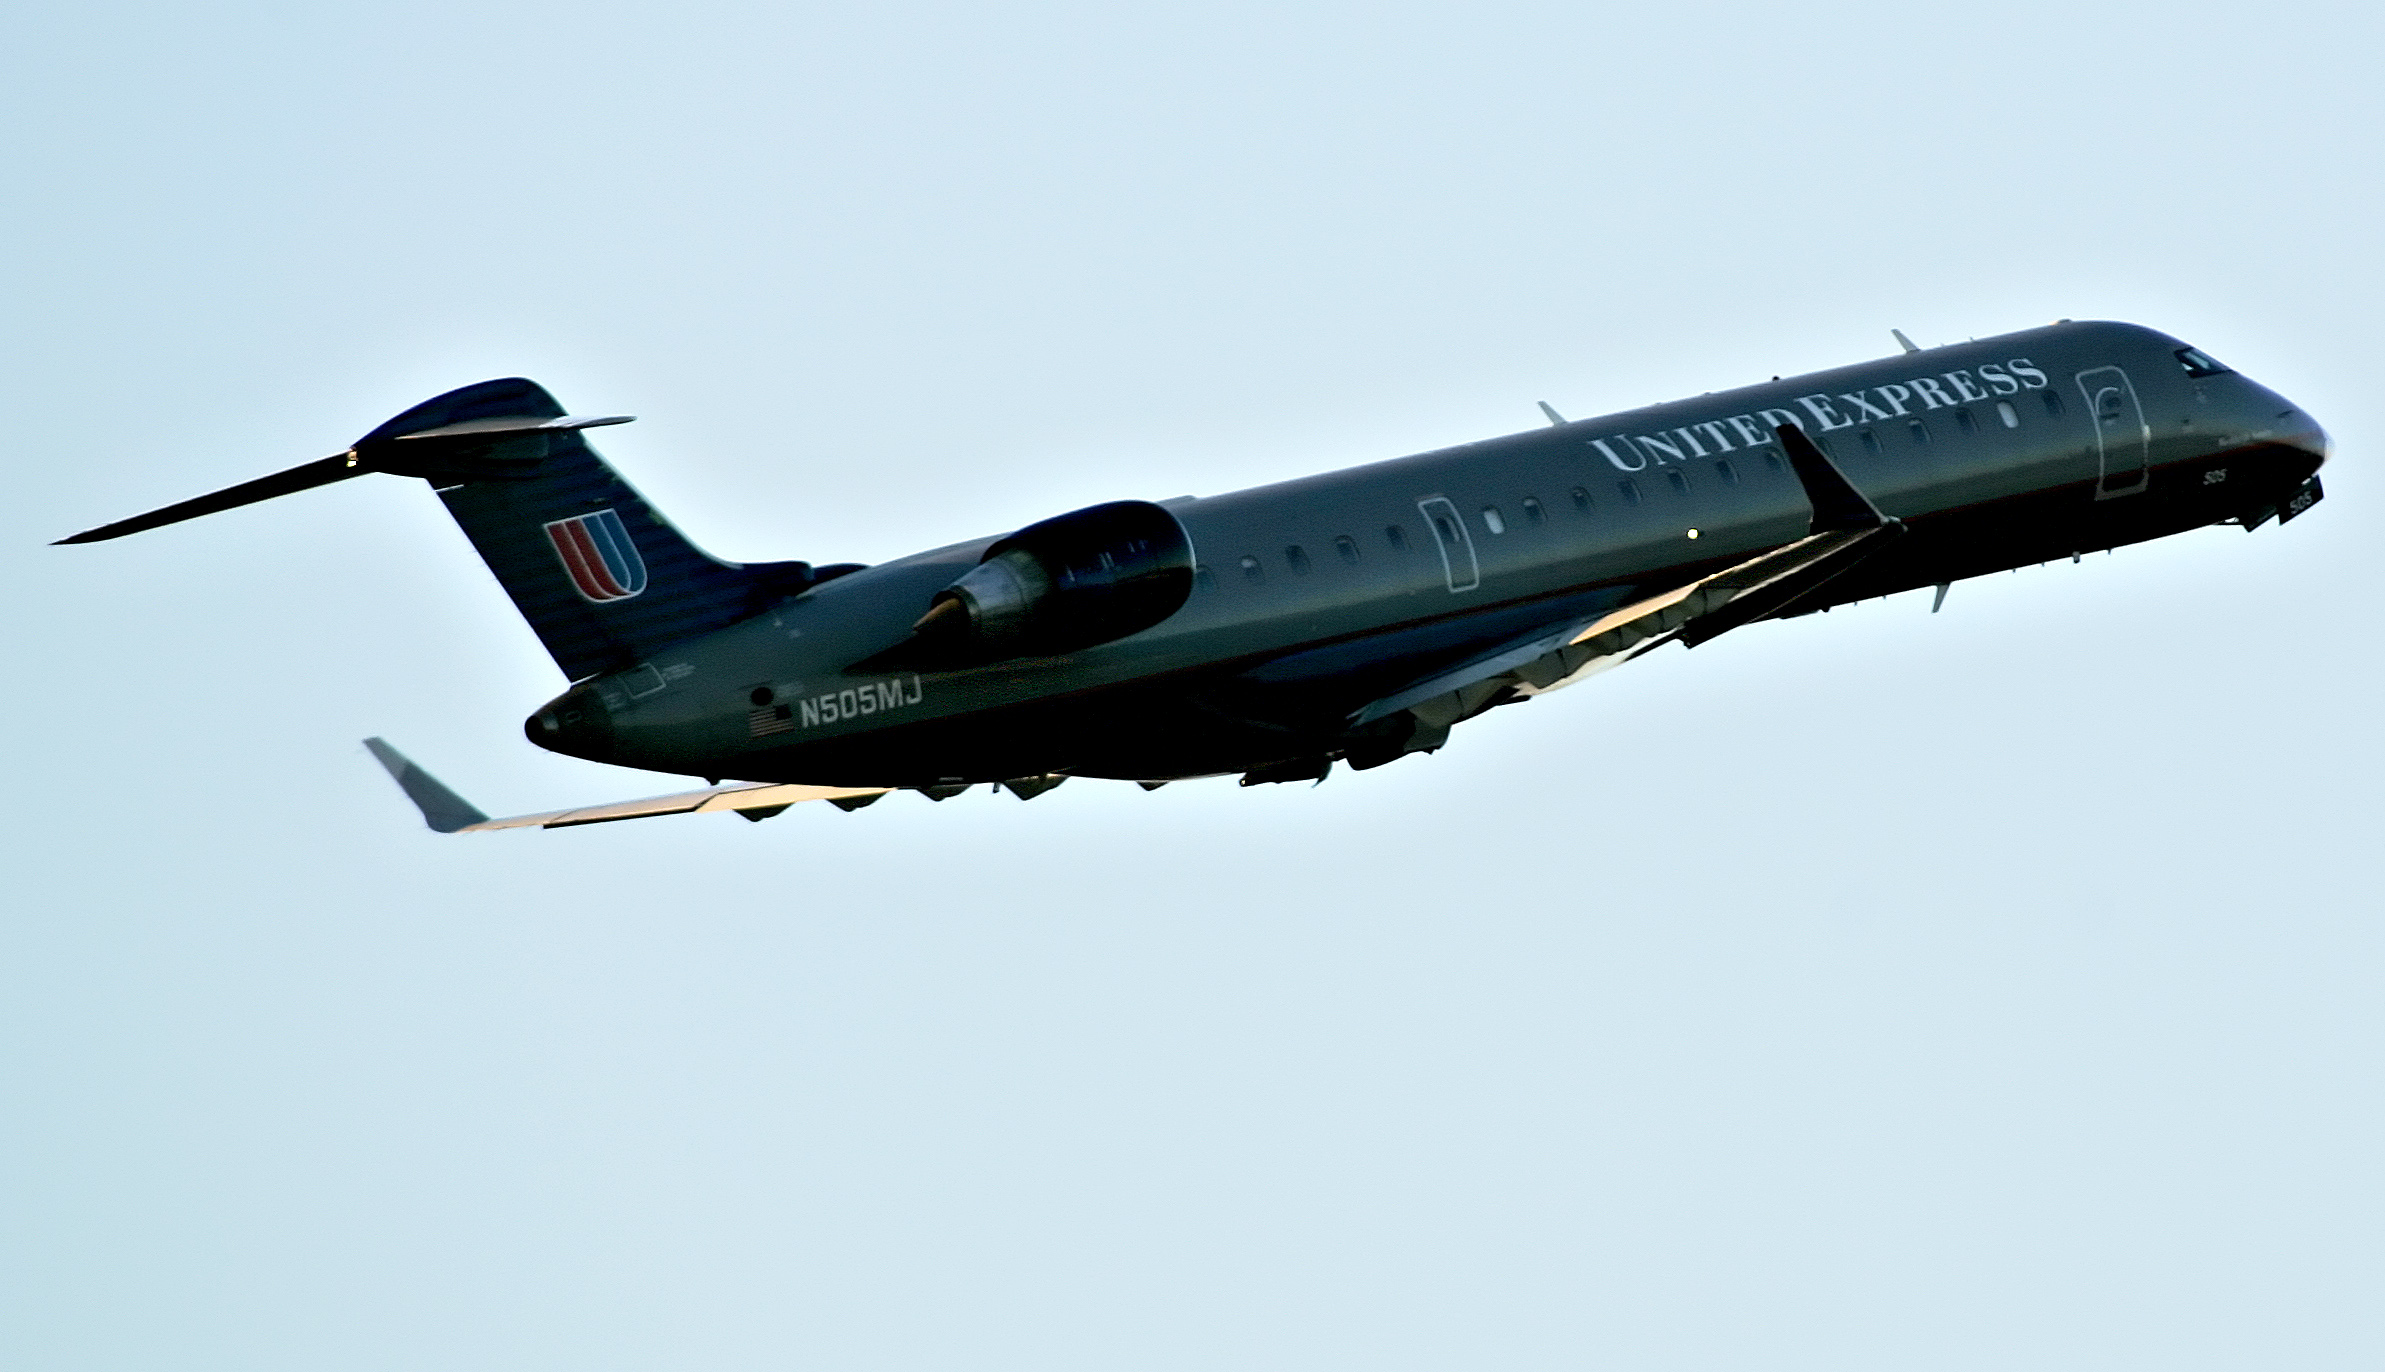 A UAL Corp. United Express/Mesa Airlines Bombardier CL600-2C10 jet (N505MJ) takes off at Raleigh-Durham International Airport in Raleigh, North Carolina, U.S., on Friday, Nov. 6, 2009. Airline passenger traffic through September this year dropped 5.3 percent, and the International Air Transport Association (IATA) which represents 93 percent of all international traffic flown, predicts a combined loss of about $11 billion for the world's airlines.